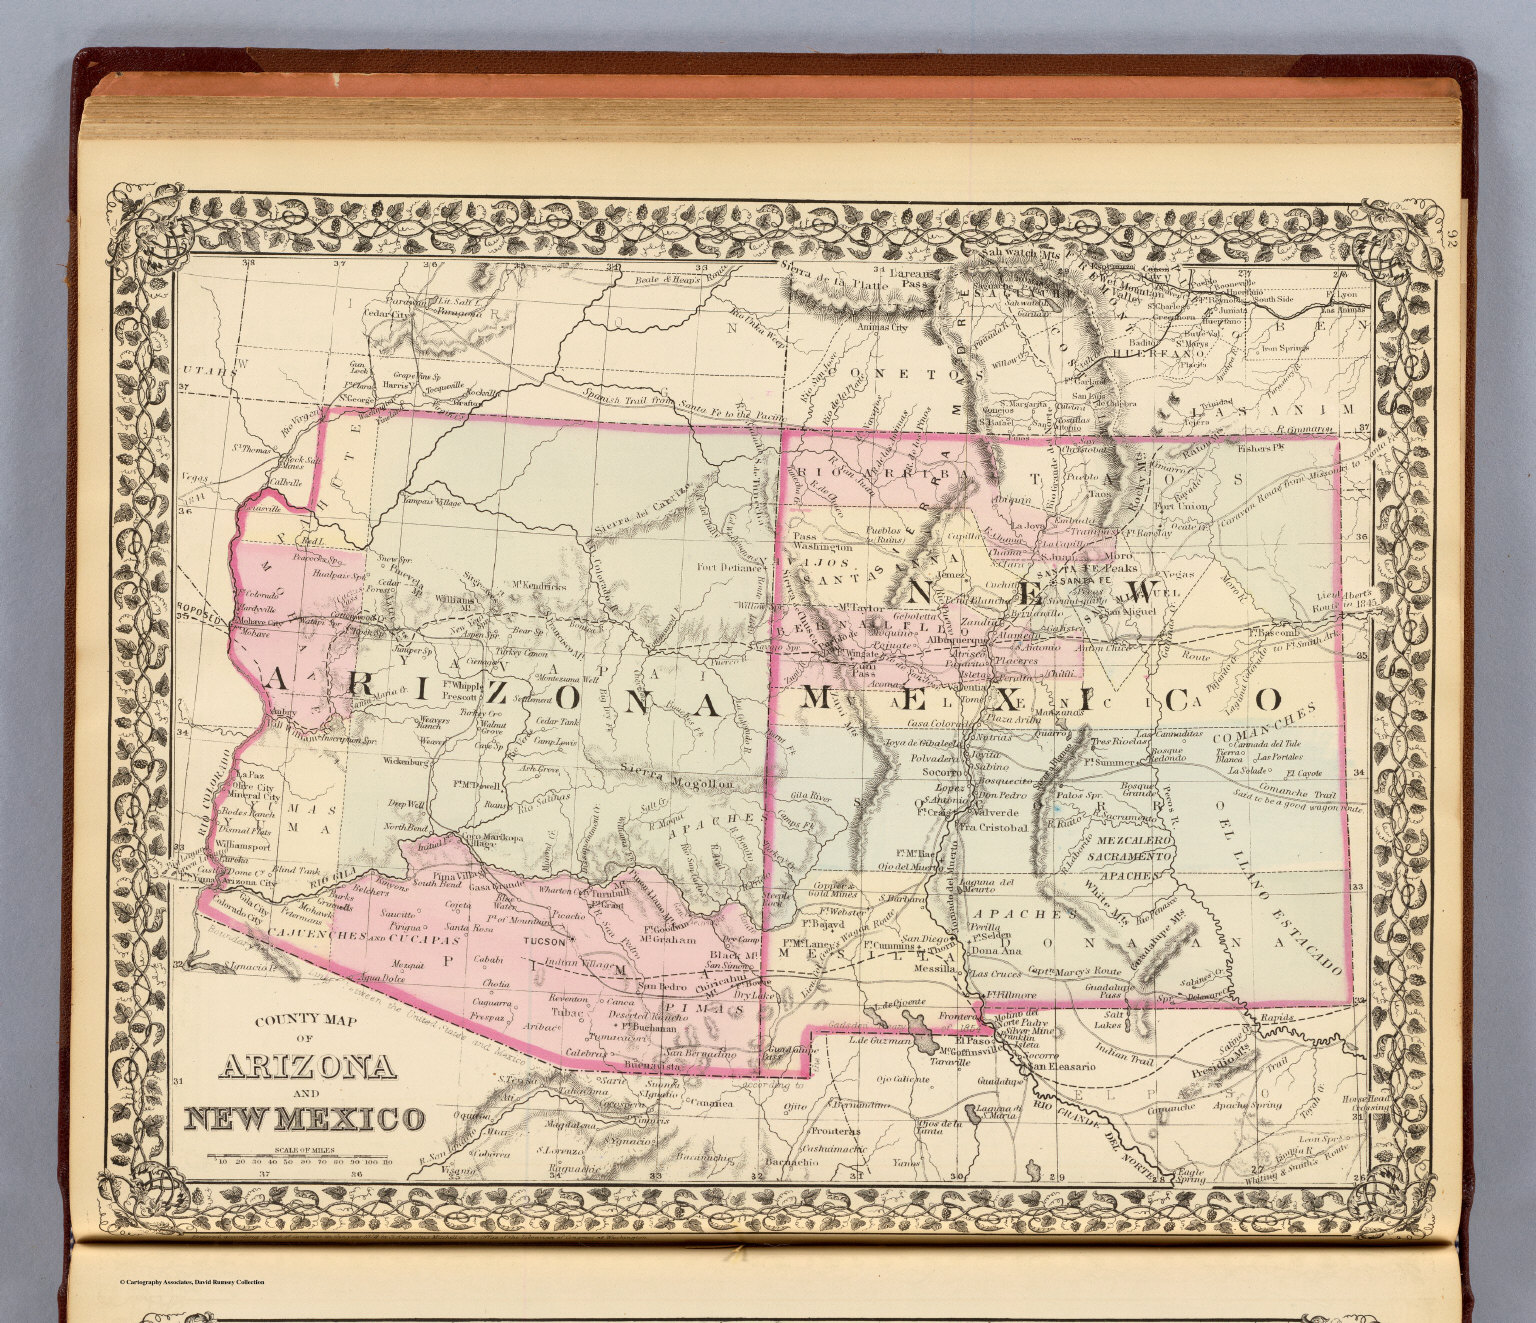 Arizona New Mexico David Rumsey Historical Map Collection - Map of arizona and new mexico